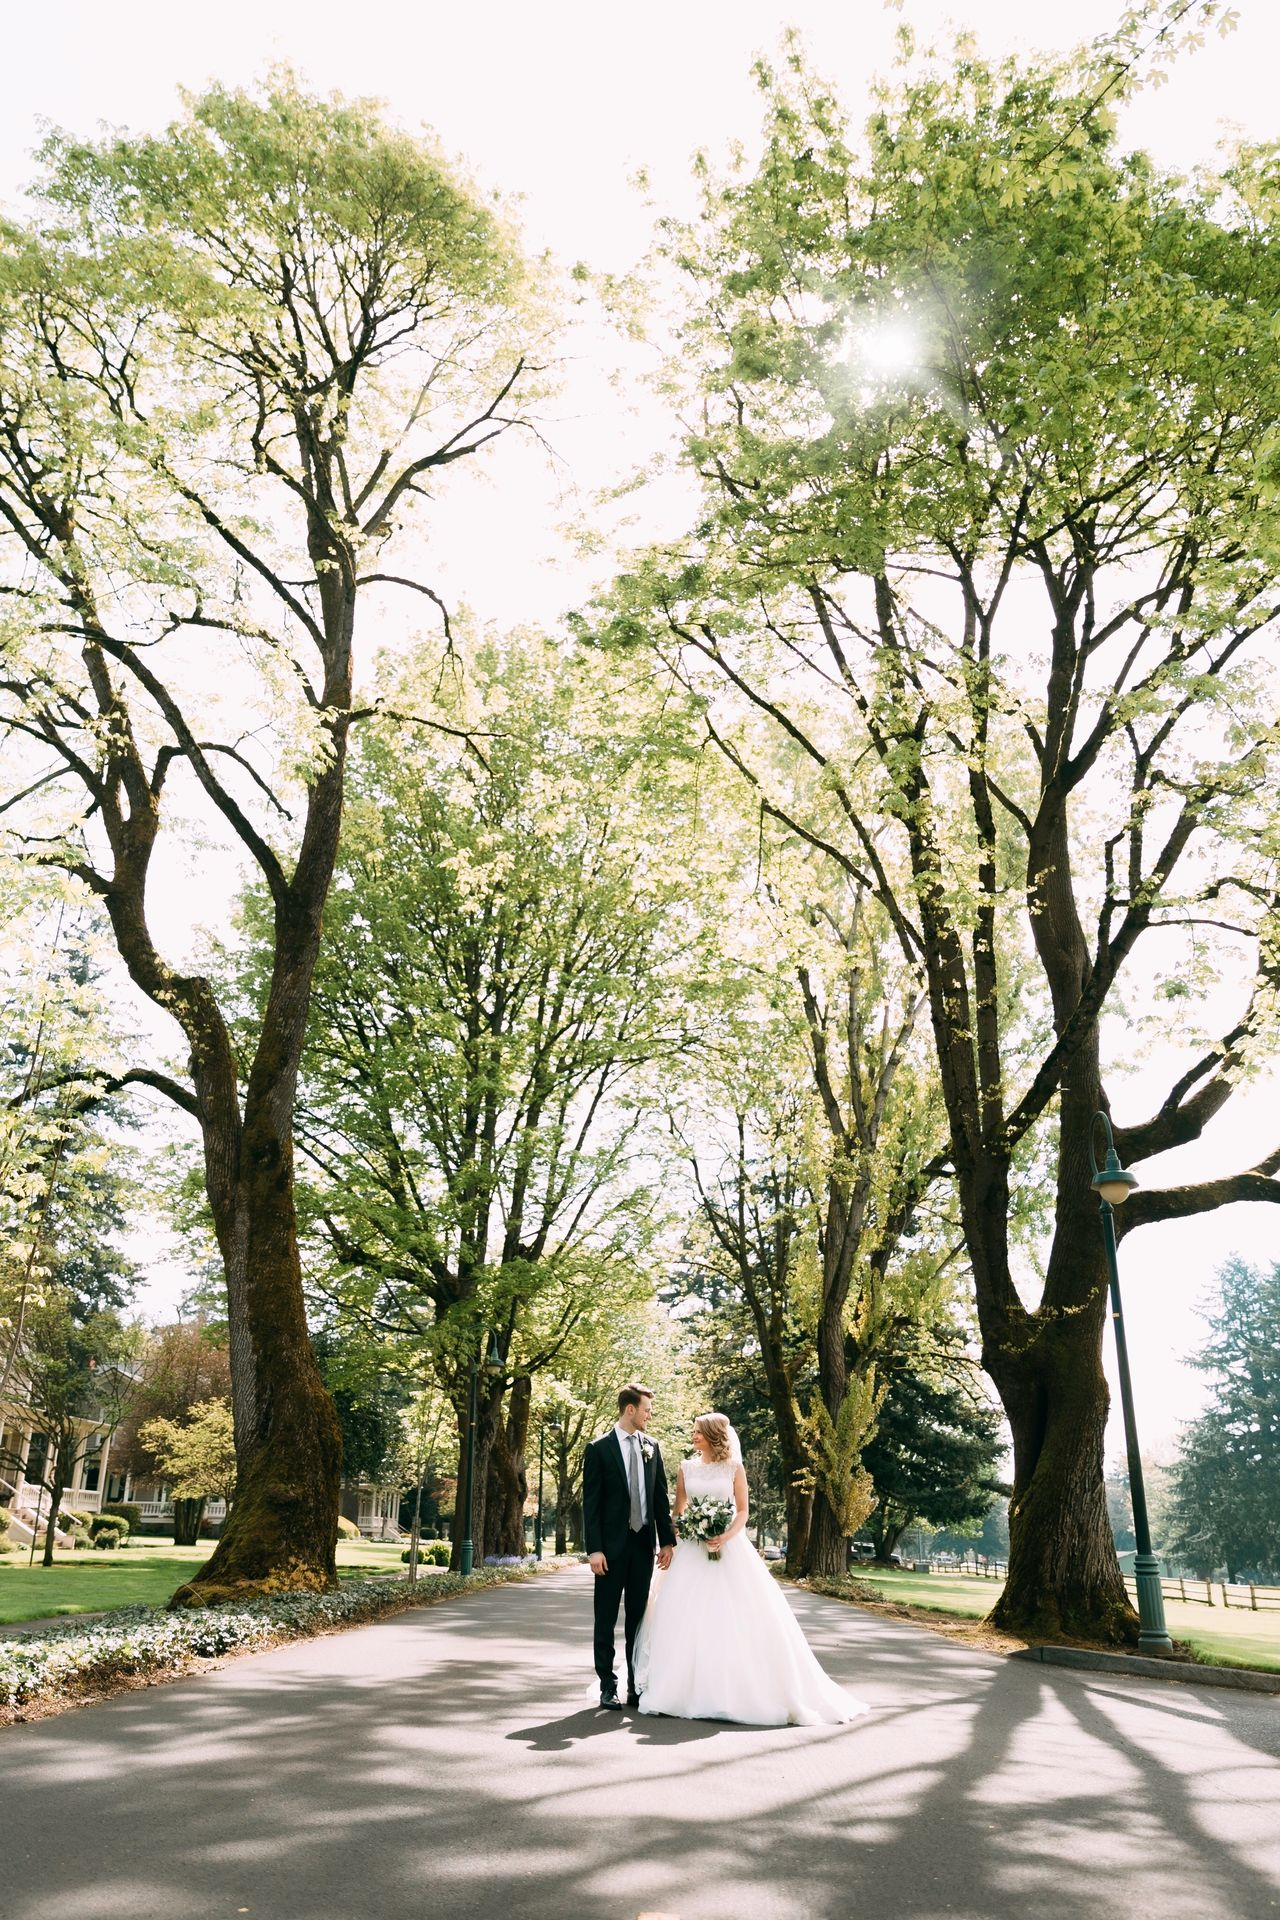 Capturing these two love birds. Tree Two People Full Length Walking Rear View Love Adult Togetherness Road Couple - Relationship Day Men Women Senior Men Transportation People Senior Women Adults Only Outdoors Bonding